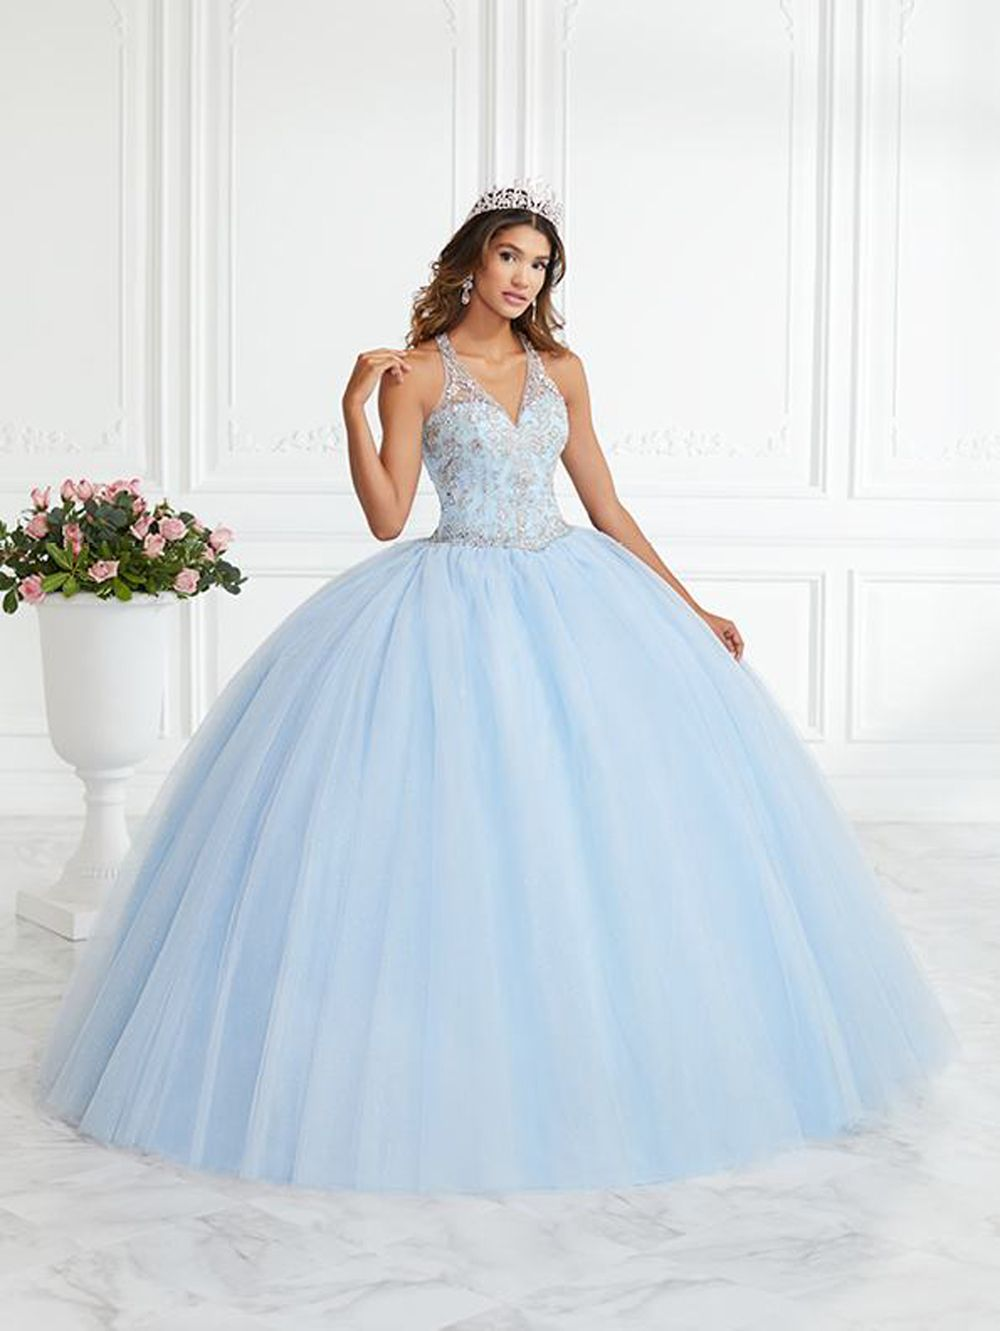 House Of Wu 56394 Strappy Back Quince Dress Quinceanera Dresses Blue Quincenera Dresses Pretty Quinceanera Dresses [ 1331 x 1000 Pixel ]